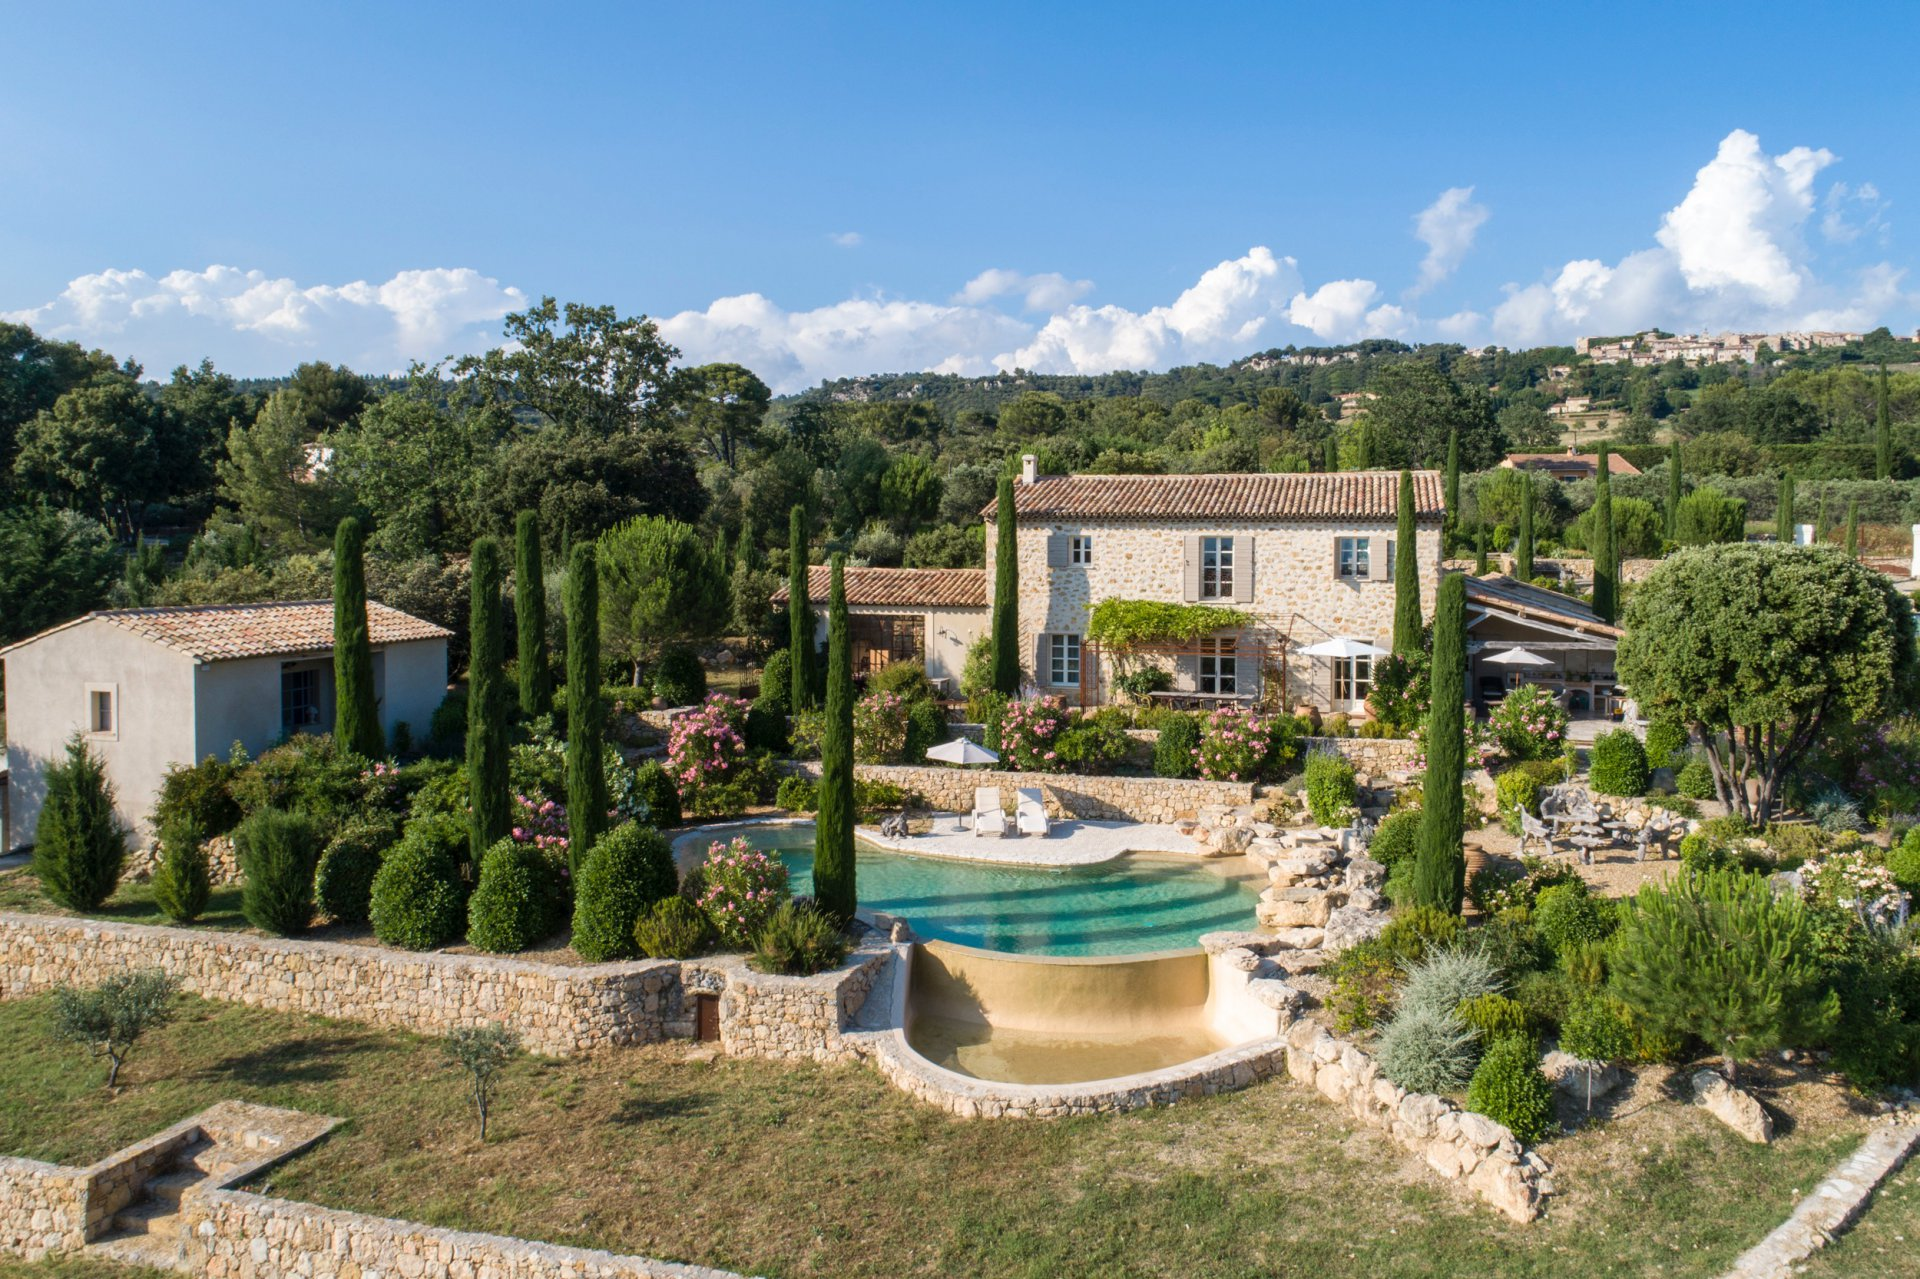 Natural stone build bastide near Tourtour